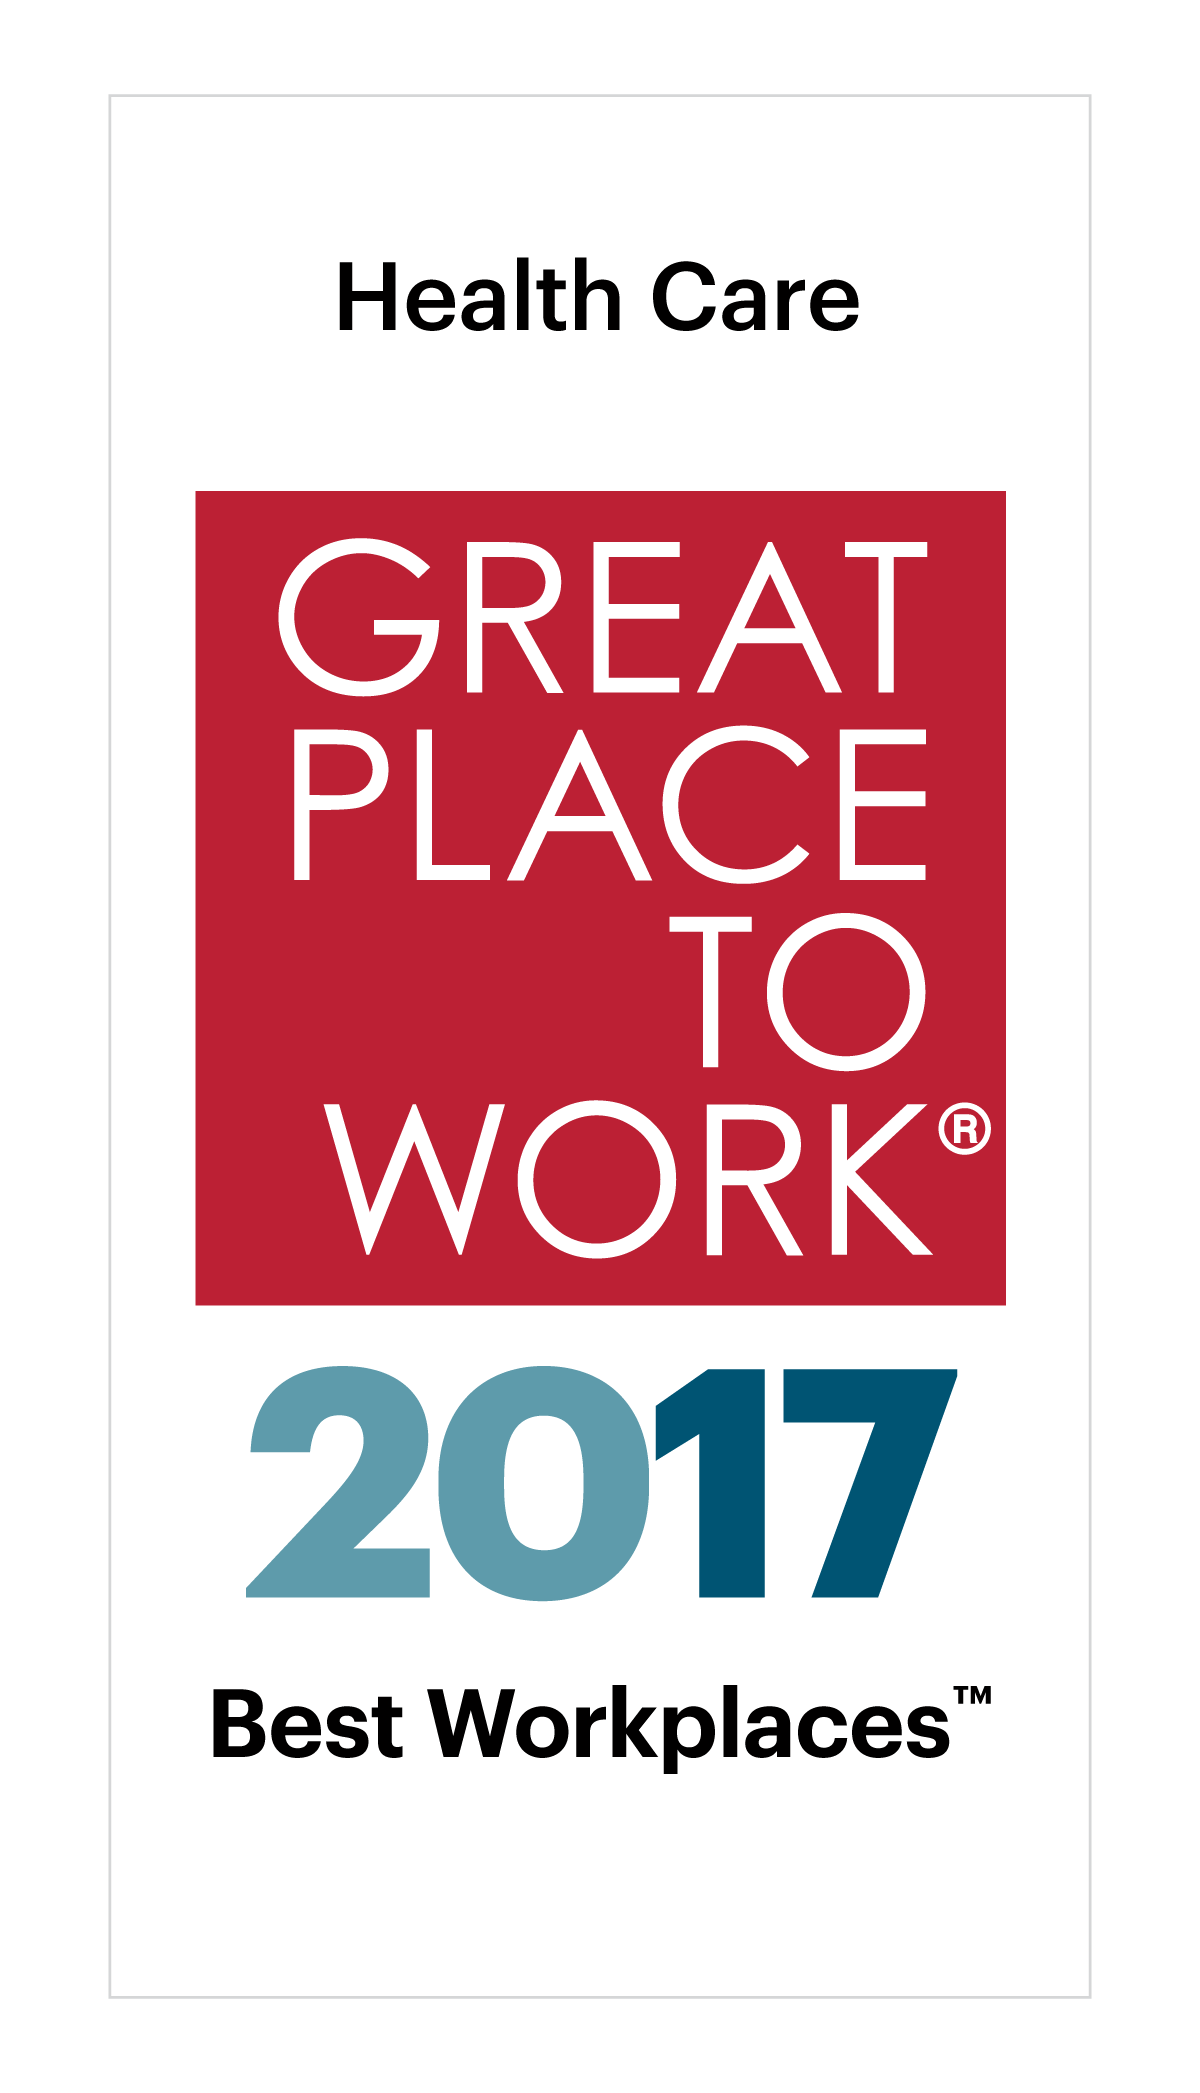 Best Workplaces in Health Care 2017 Image